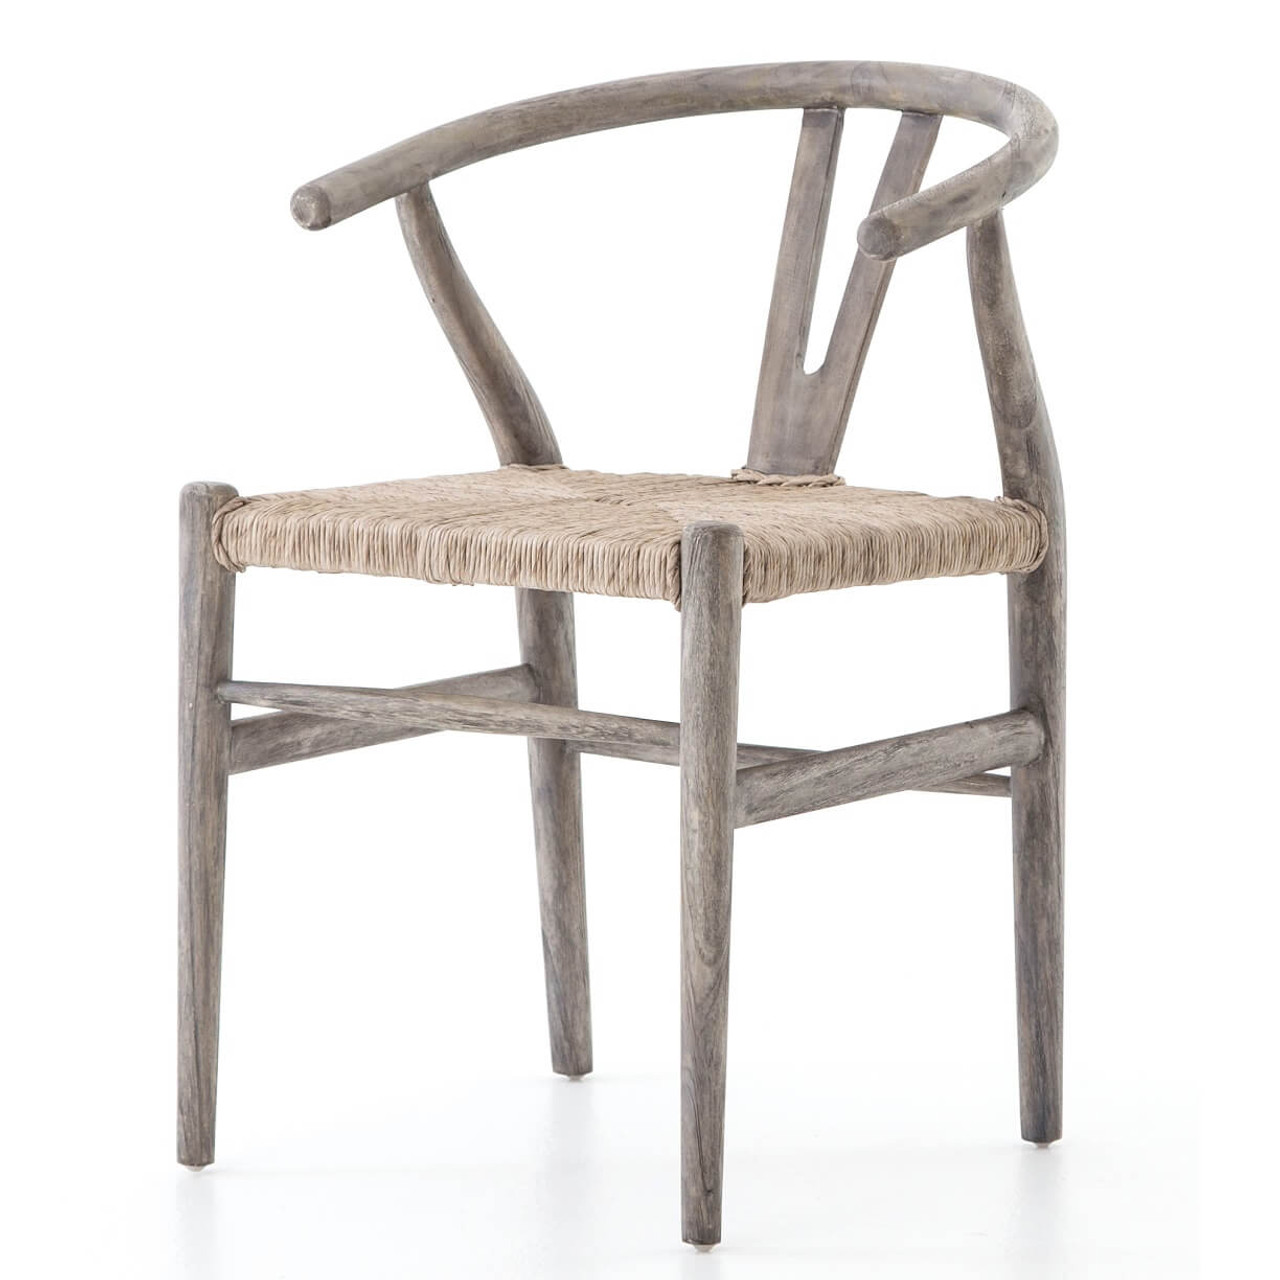 Muestra grey teak wood woven wicker dining chair